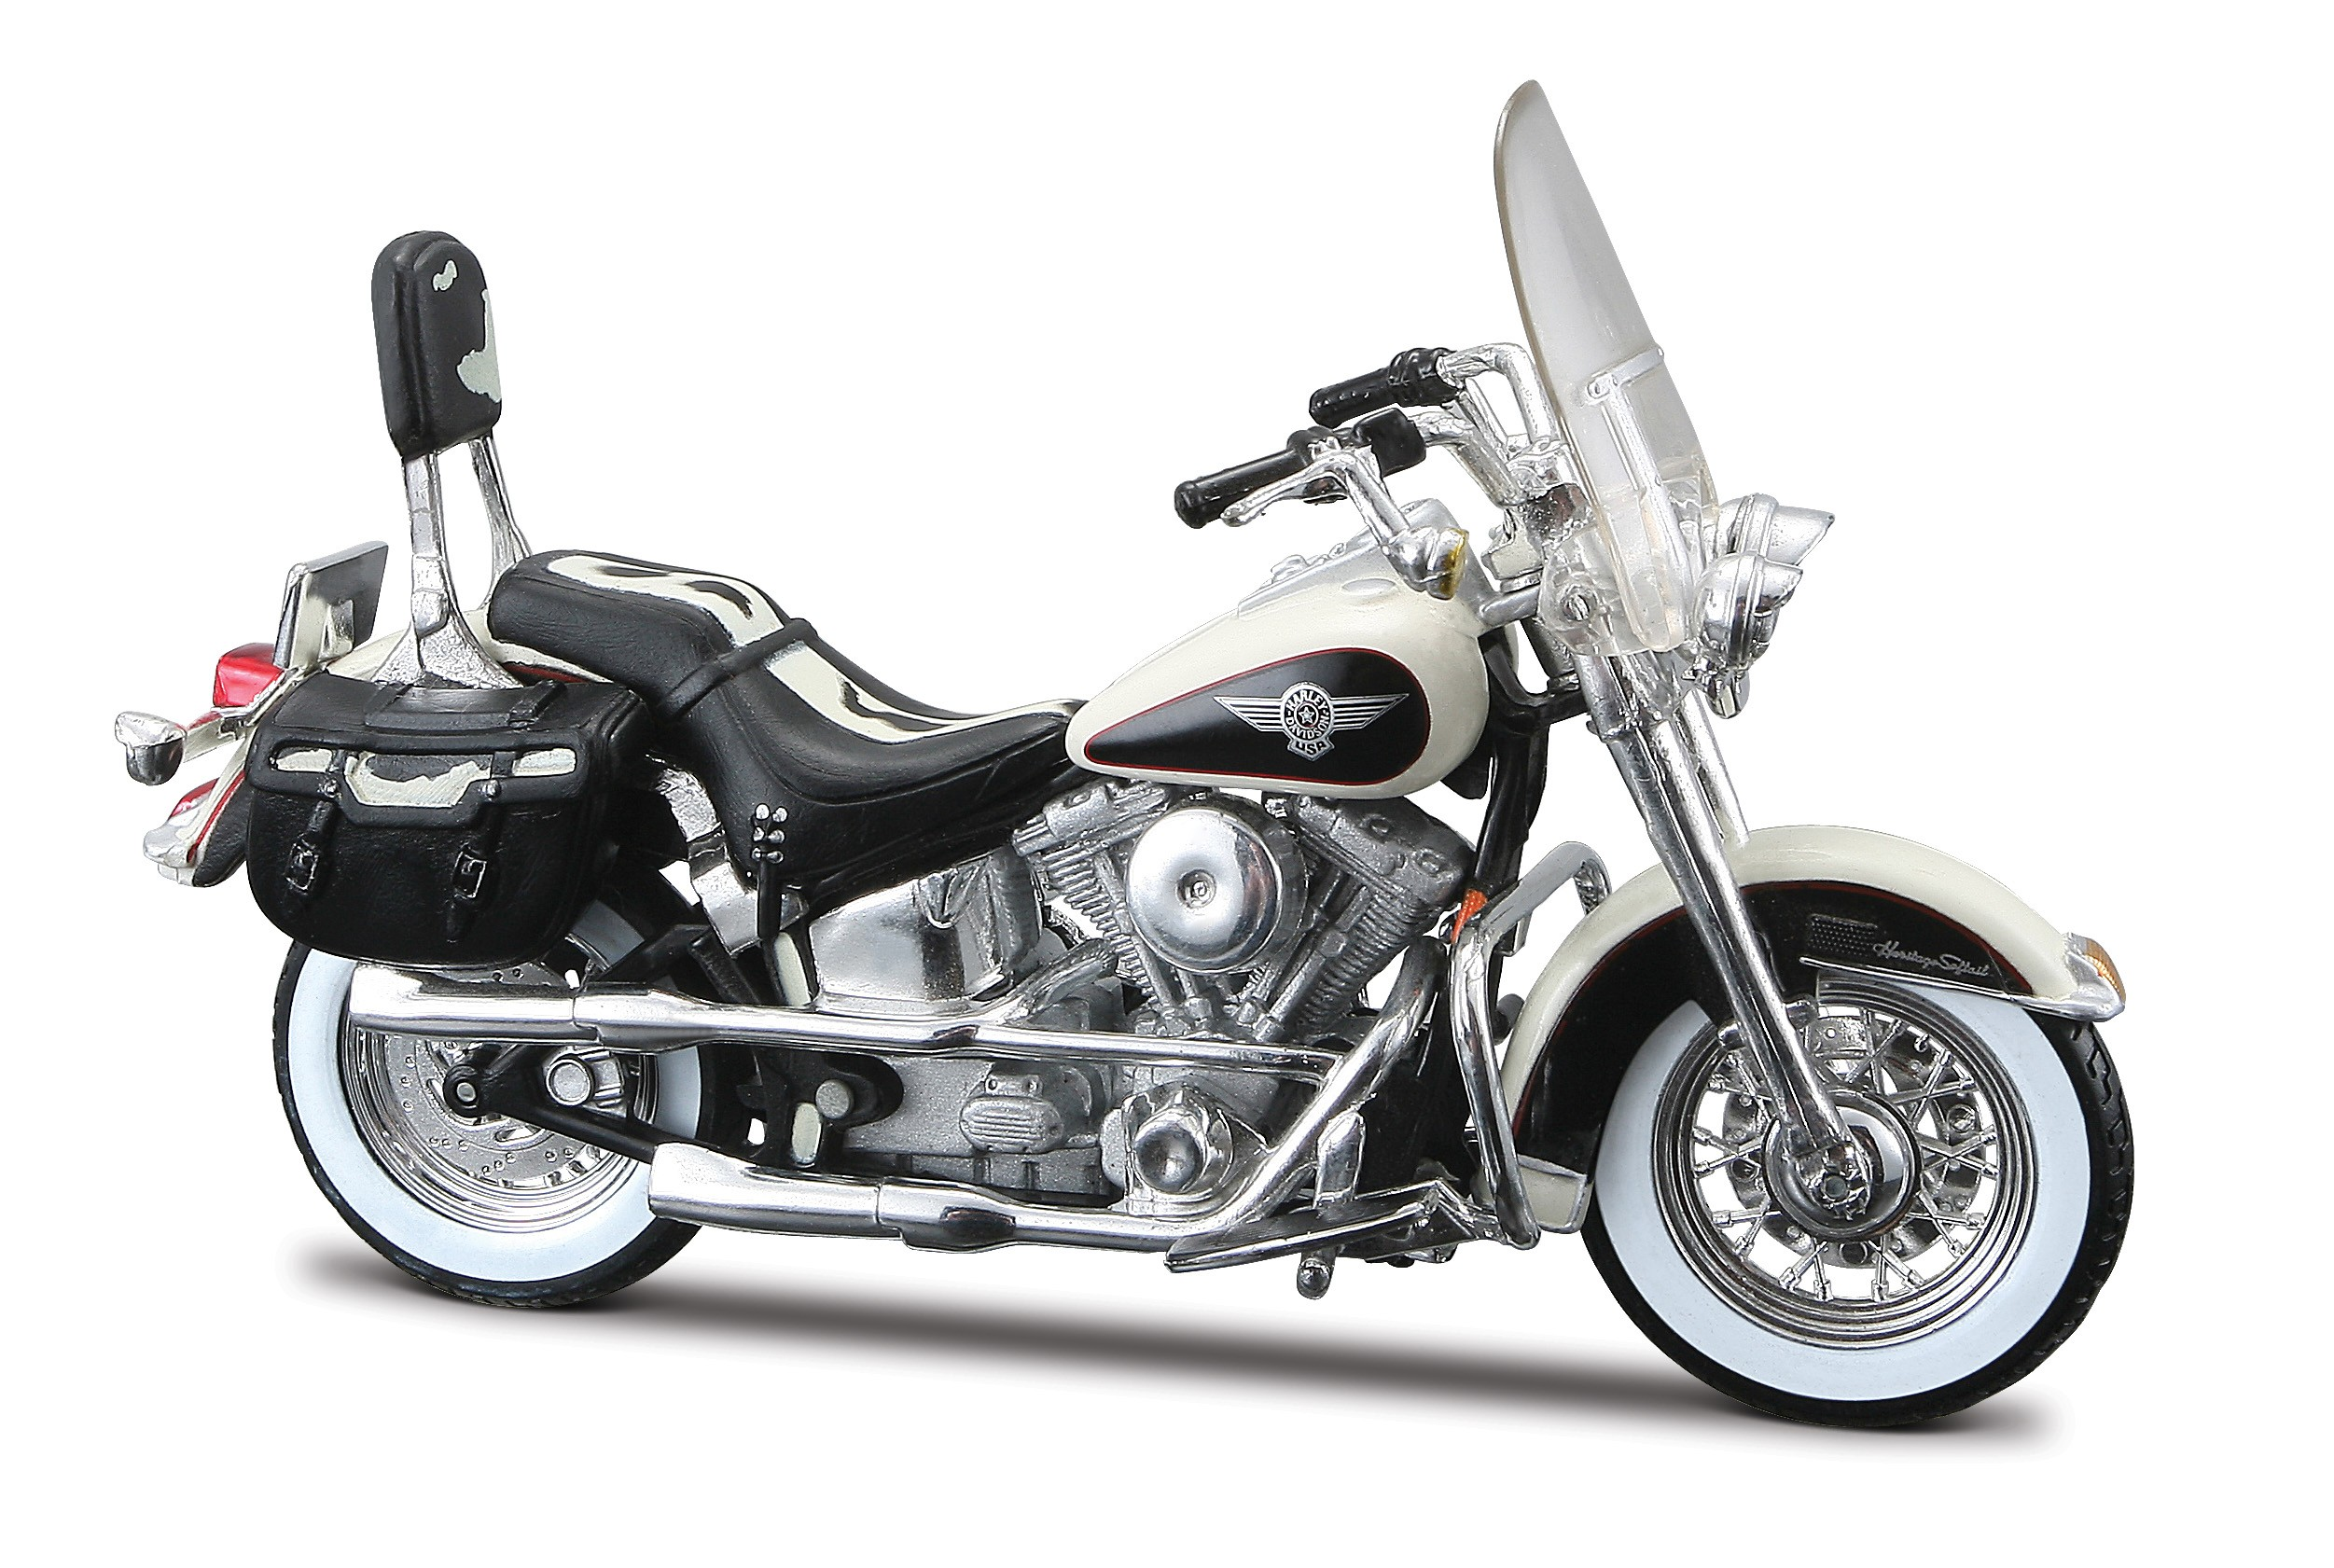 Harley-Davidson FLSTC Heritage Softail Classic 1998 images #80165